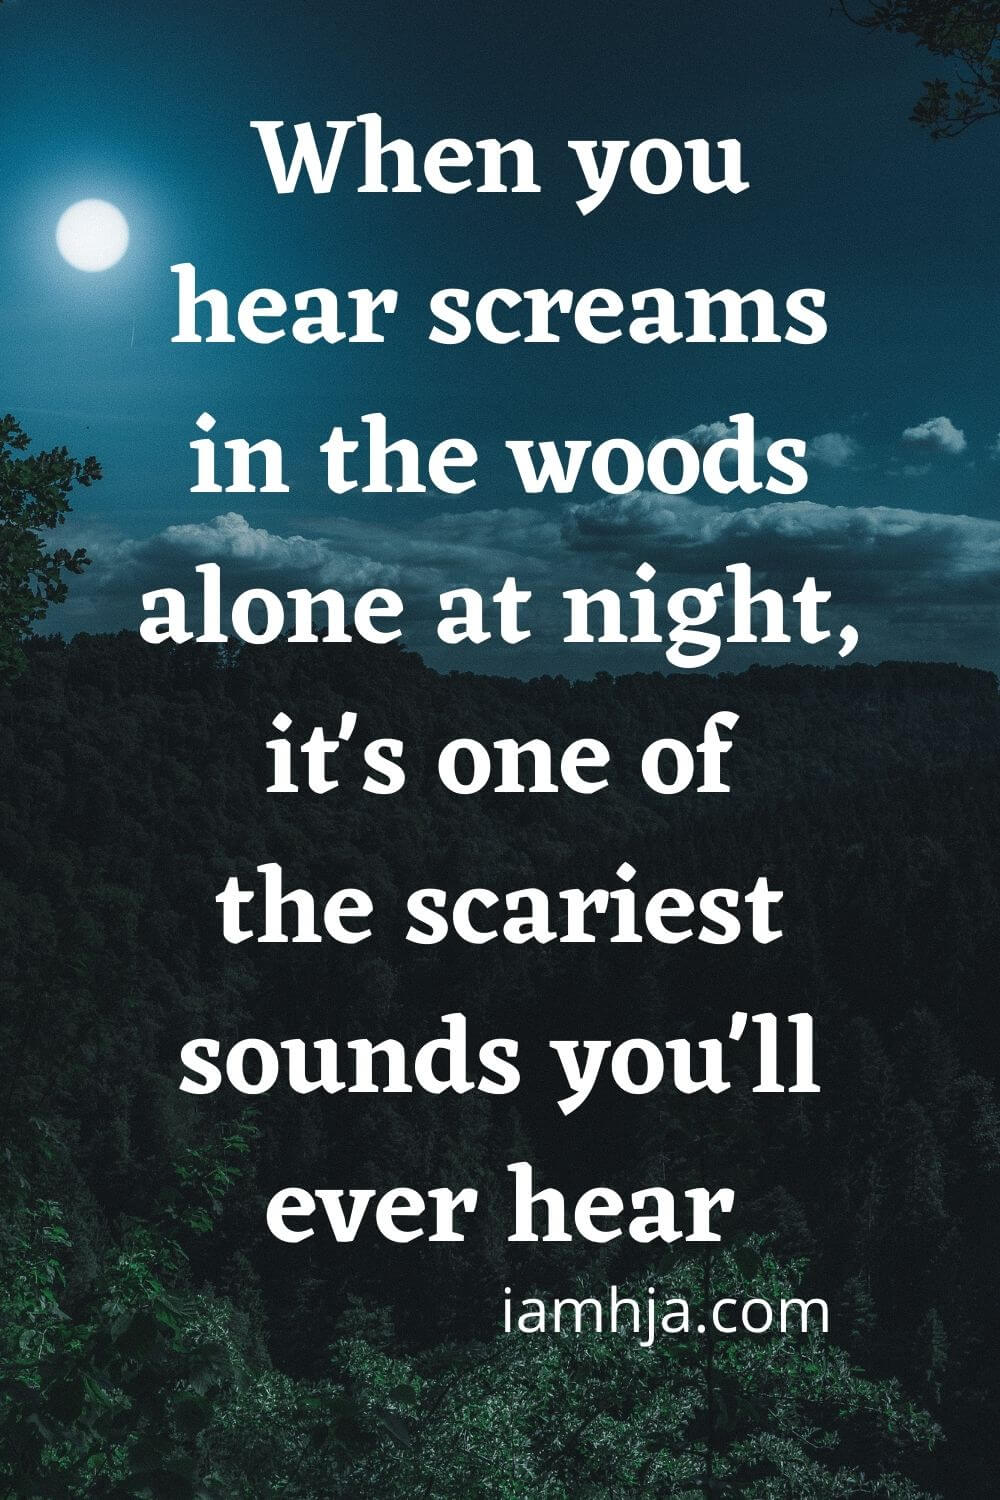 When you hear screams in the woods alone at night, it's one of the scariest sounds you'll ever hear